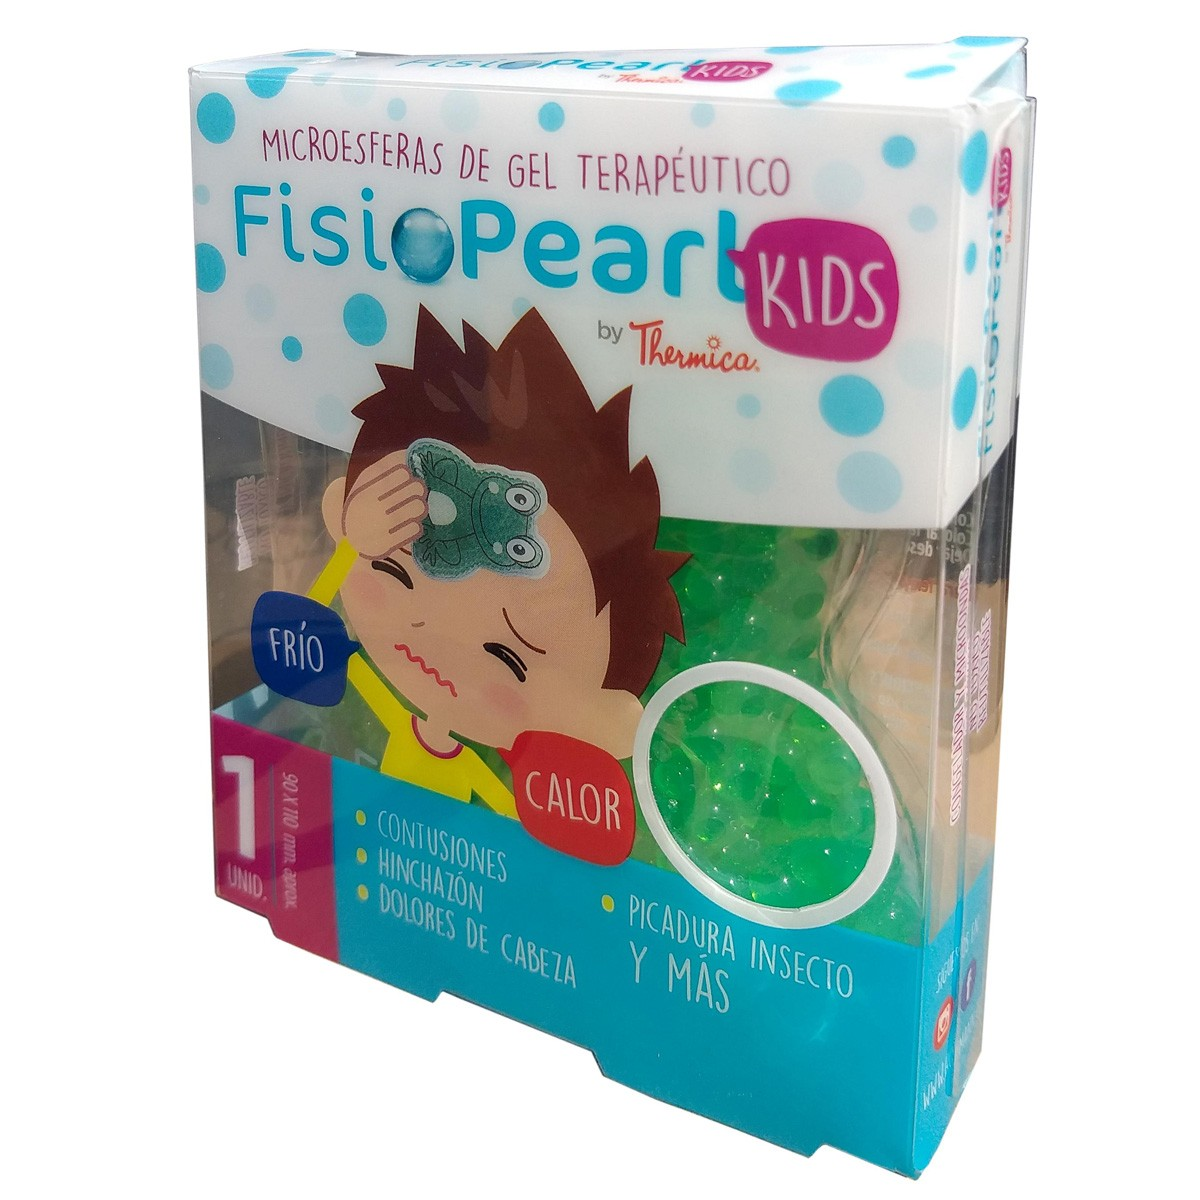 Fisiopearl Kids Cod.2849